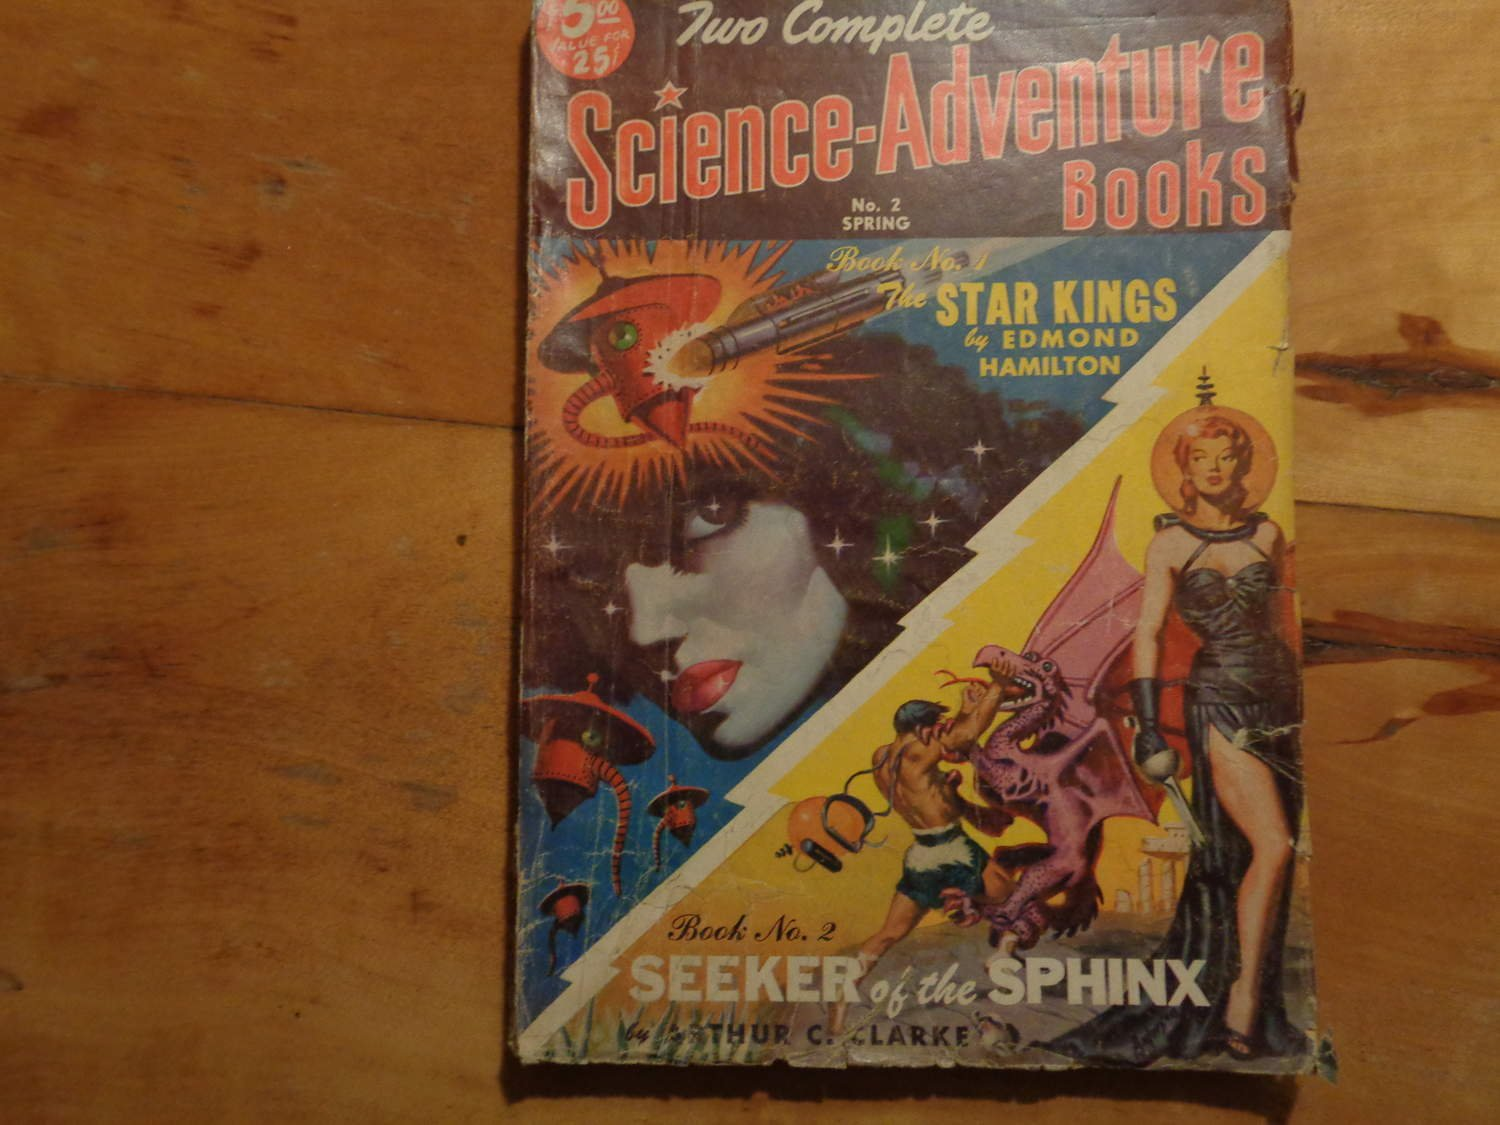 Two Complete Science-Adventure's Books 1951